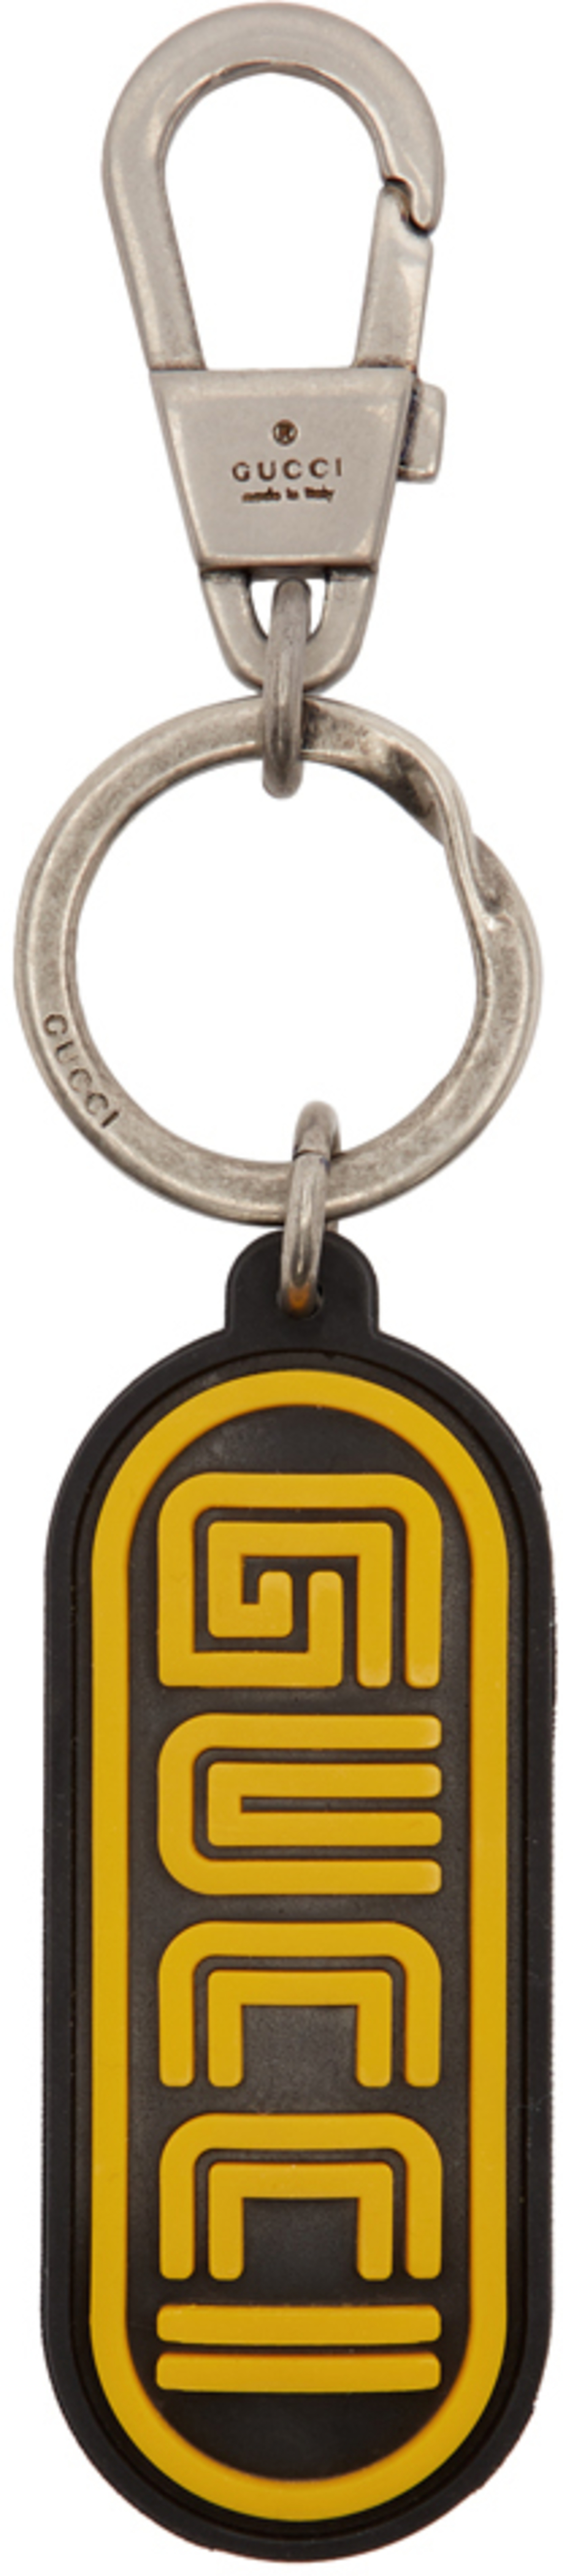 85b0a43a8e6 Gucci keychains for Men